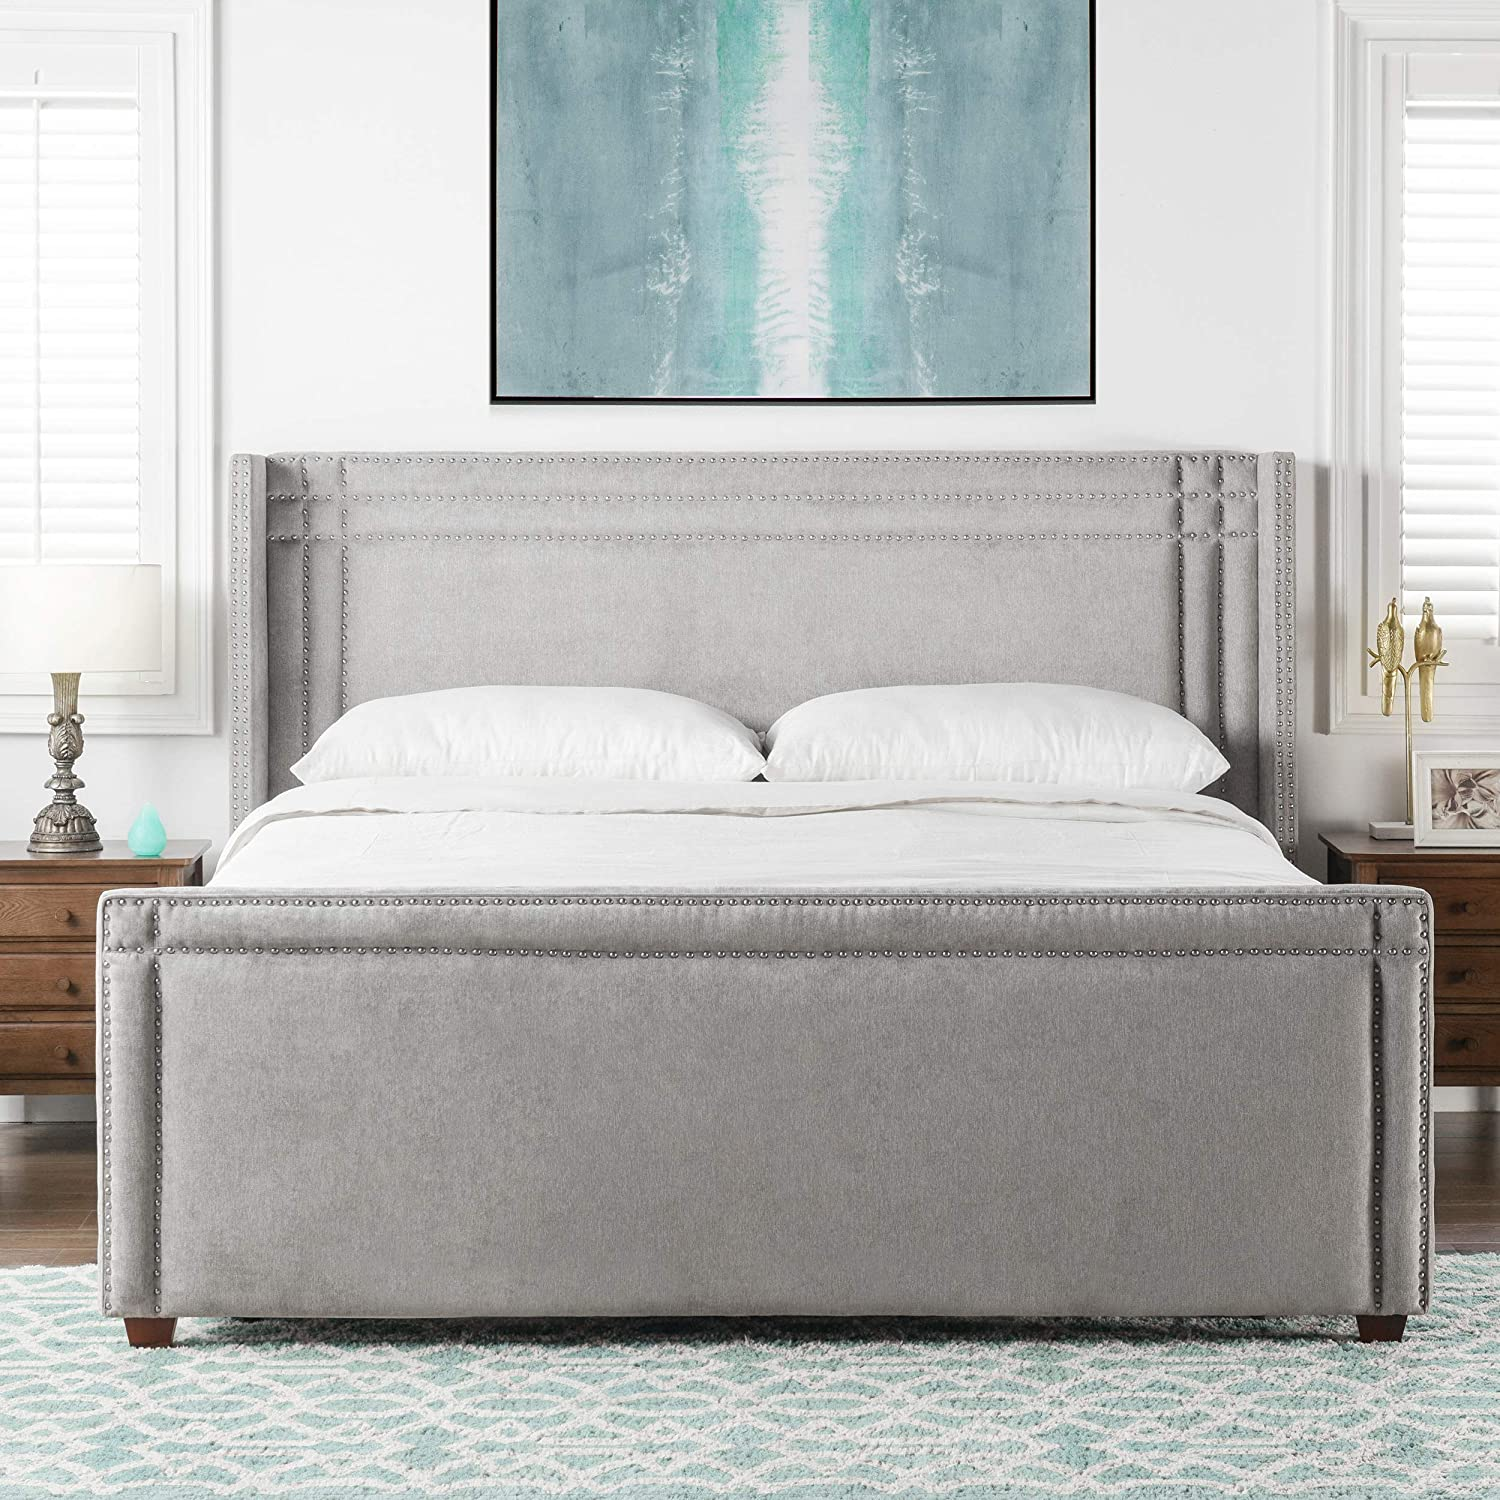 Jennifer Taylor Home Elle Collection Modern Upholstered King Size Size Bed Frame, Nailhead Trim, Silver Gray